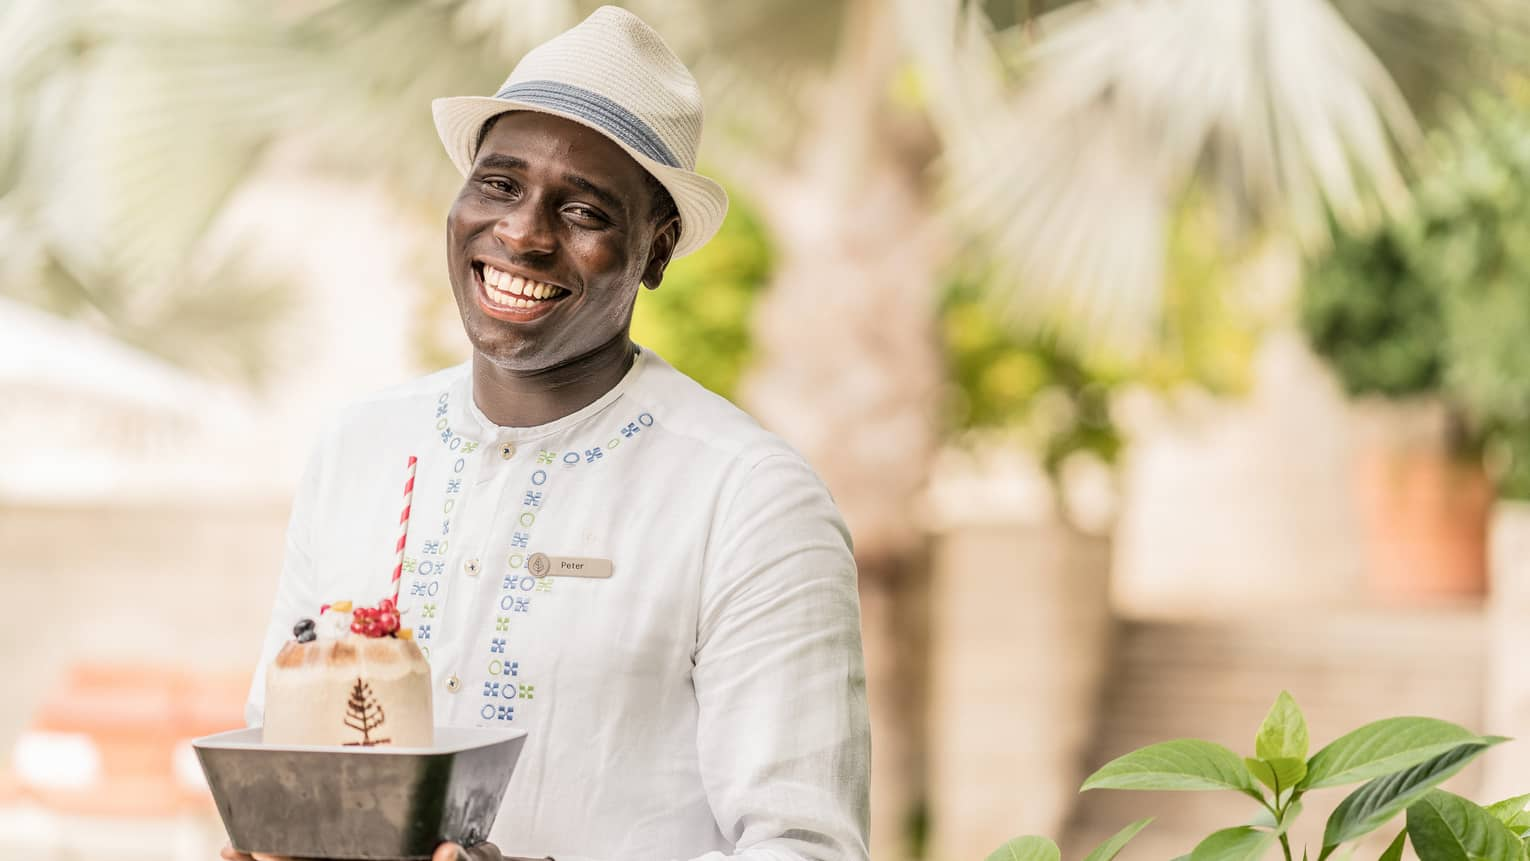 Pool staff member in white tunic and fedora holding ice cream dessert with striped straw